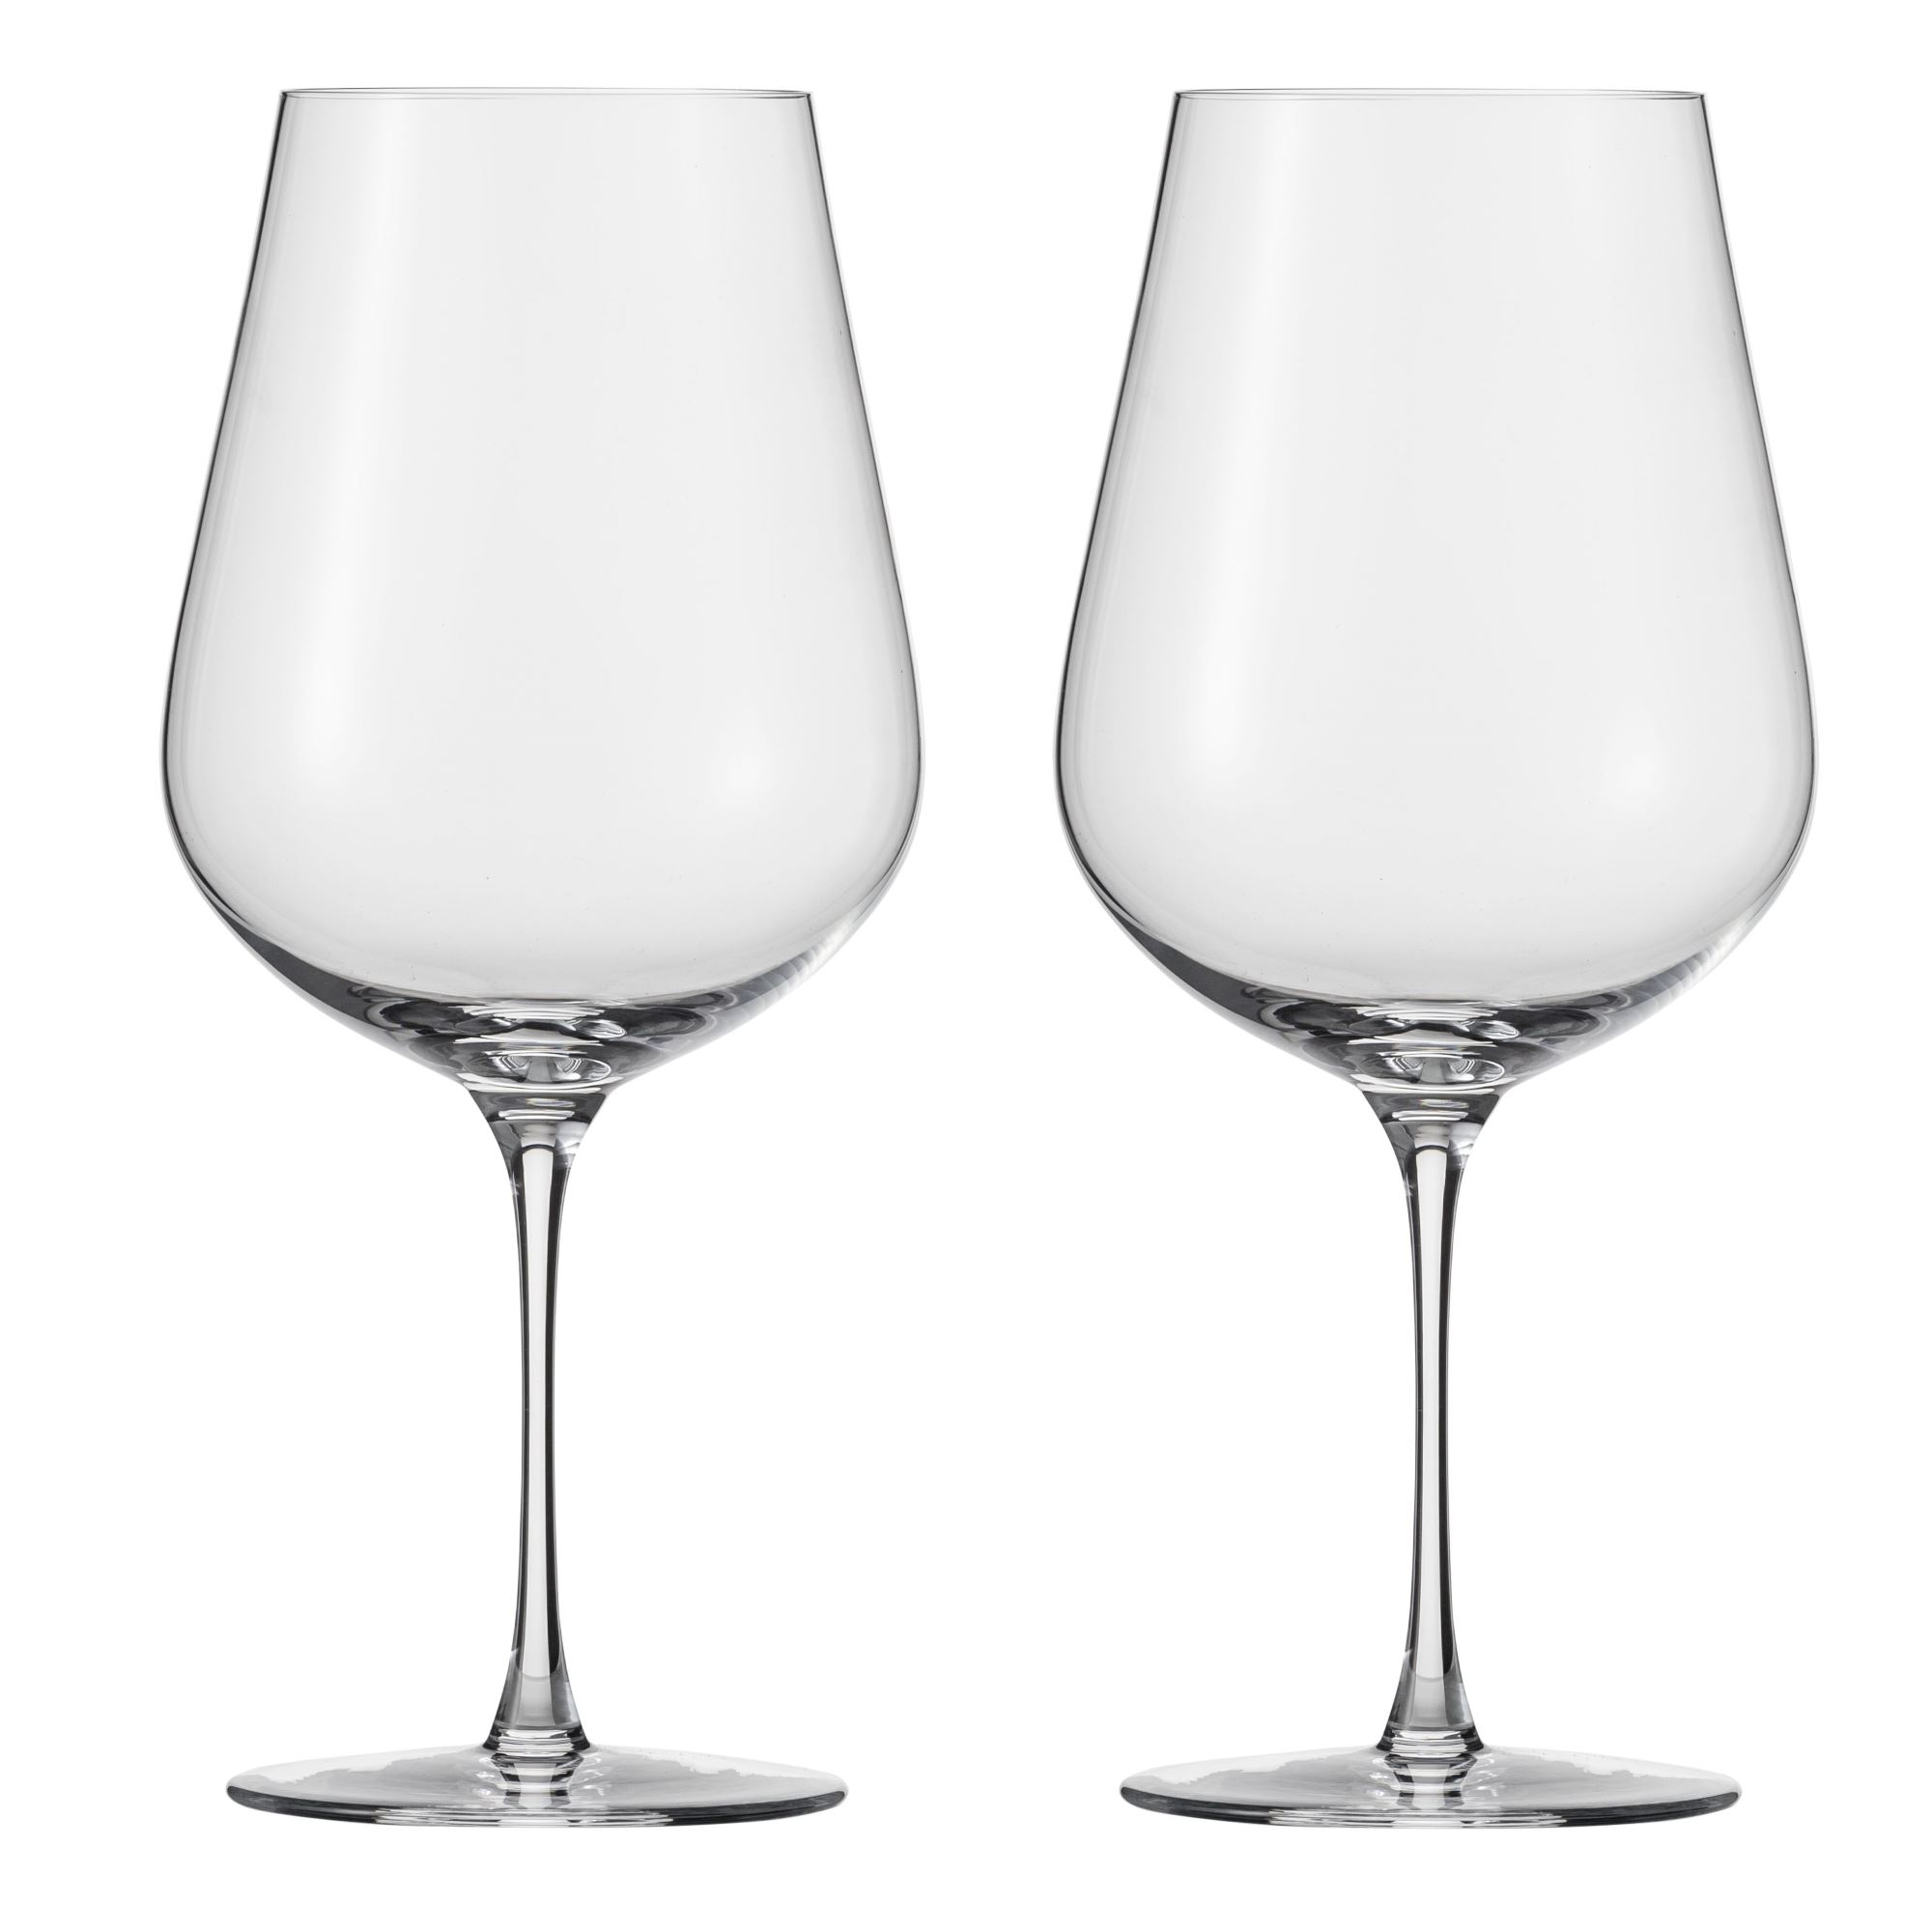 Schott Zwiesel Wine Glasses | Fortessa Flatware Outlet | German Wine Glasses Brands